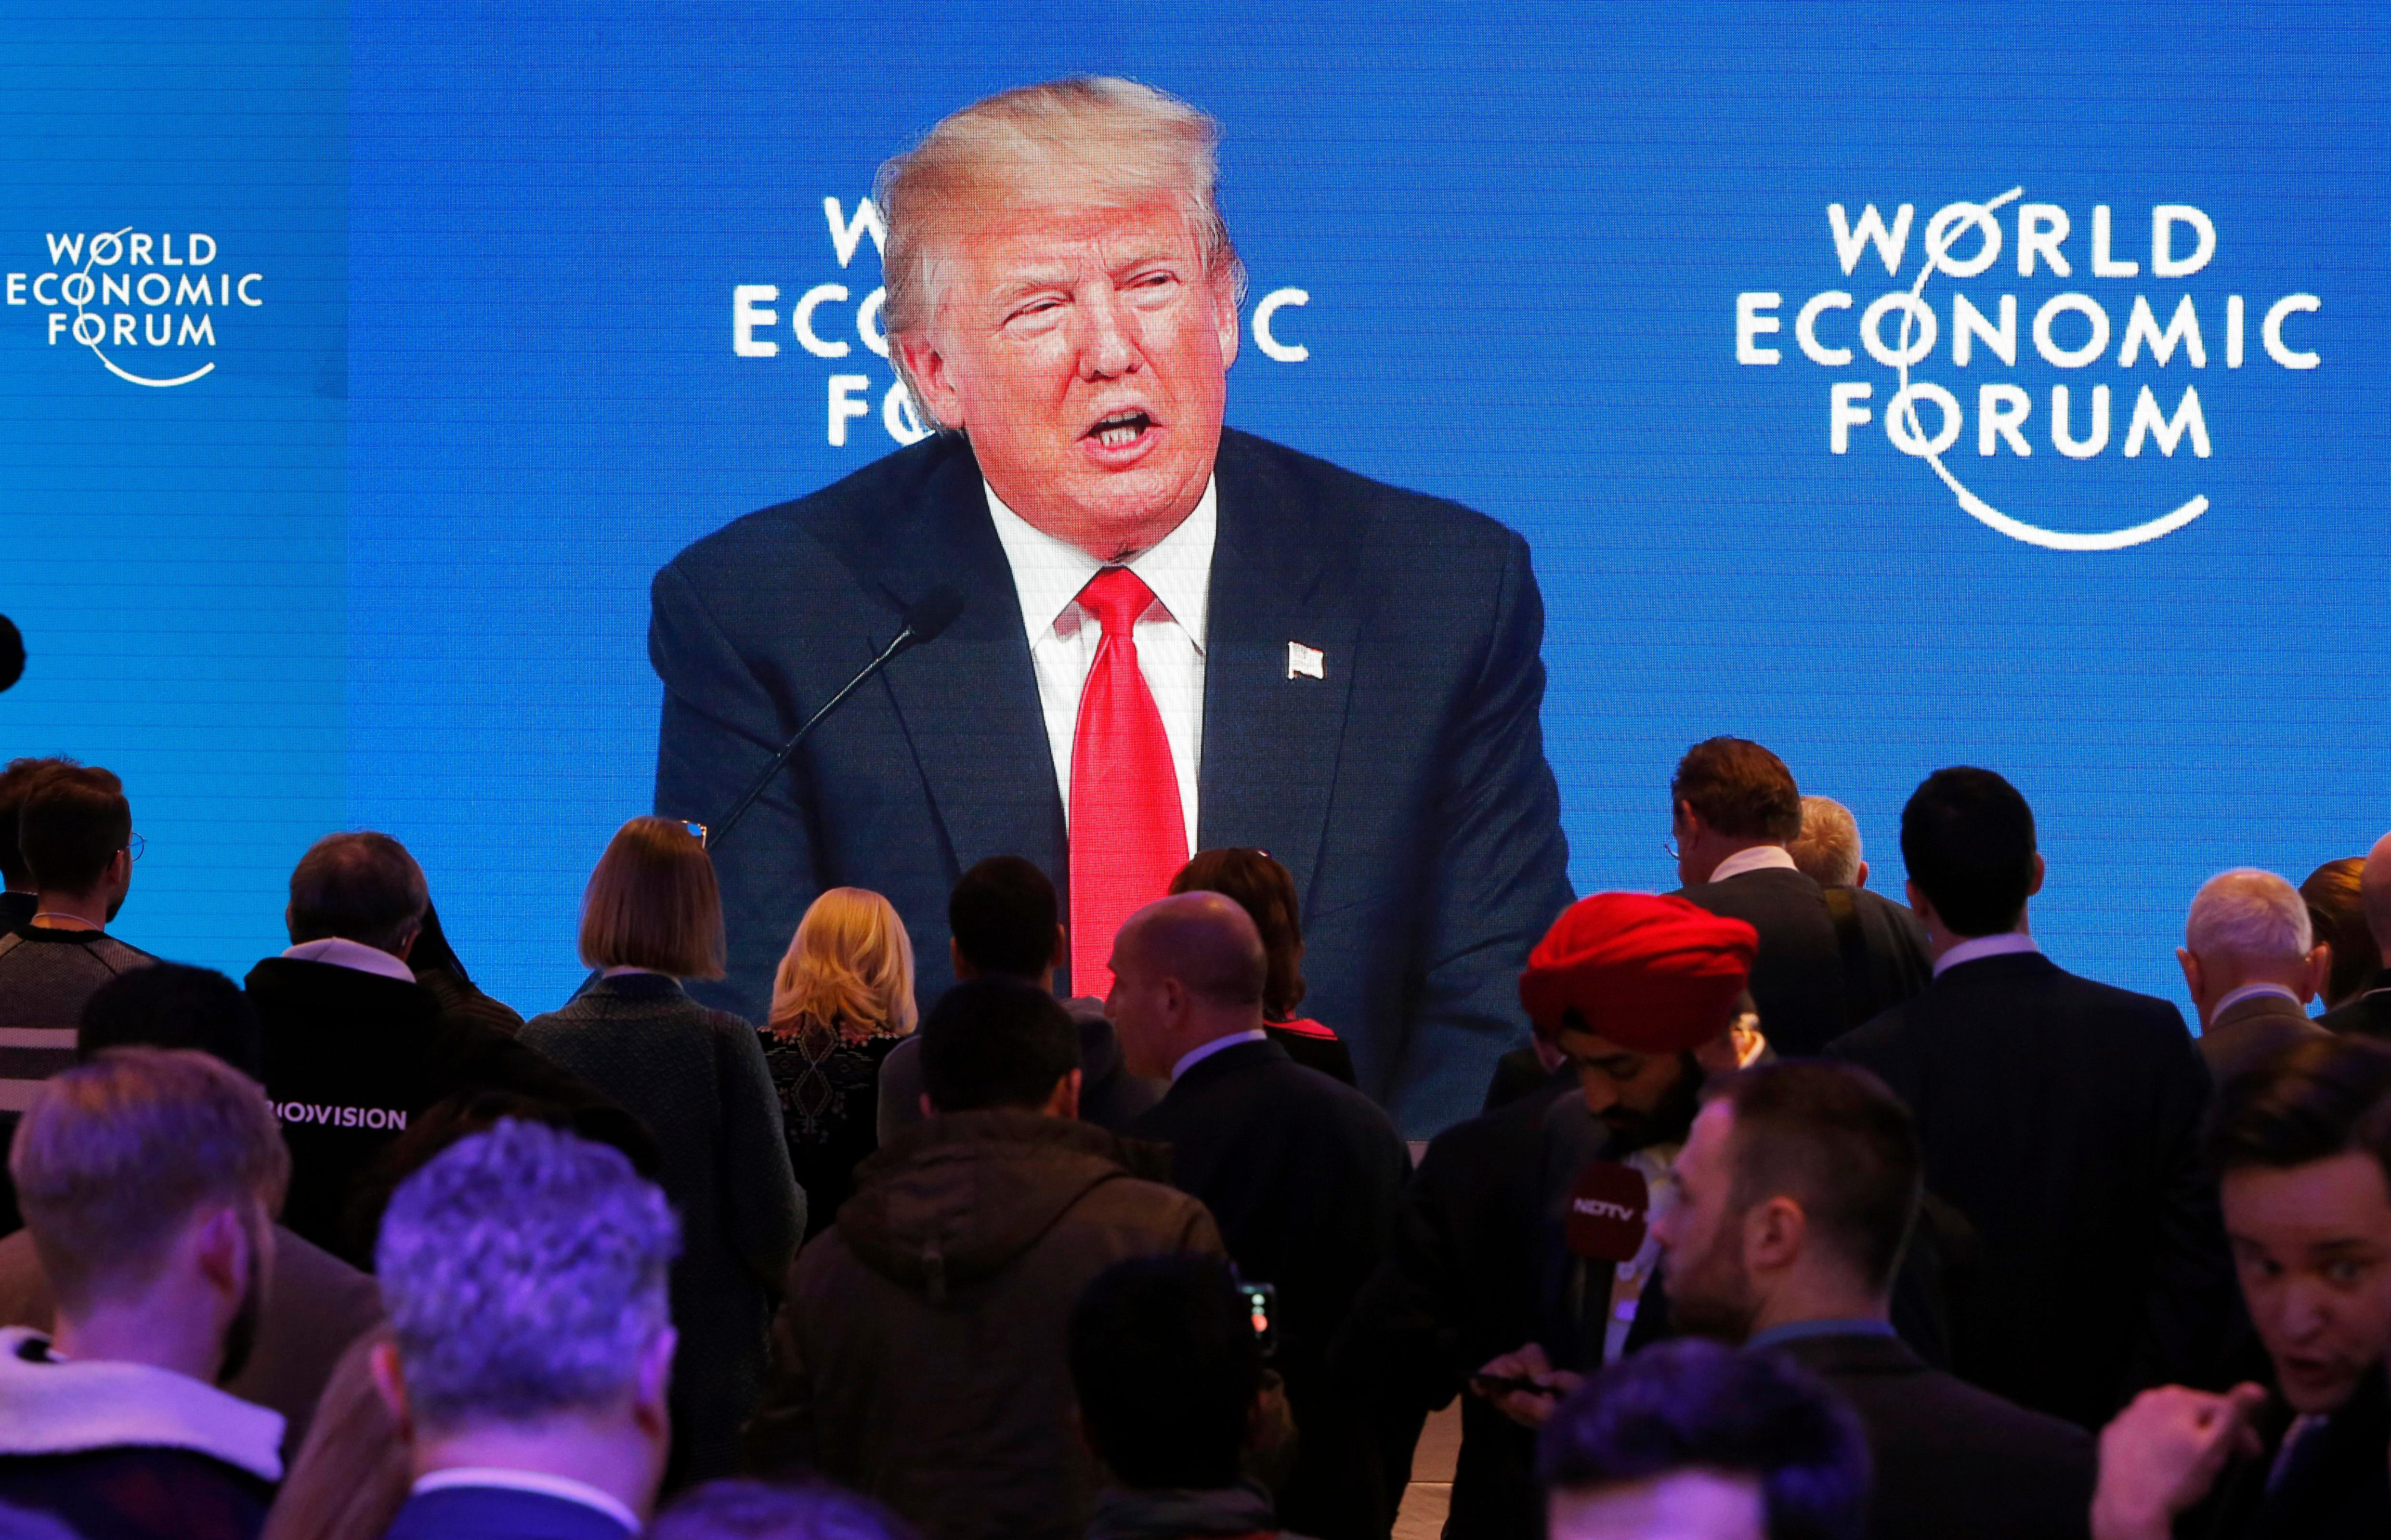 Donald Trump SNIFFS his way through entire Davos speech irritating hundreds watching